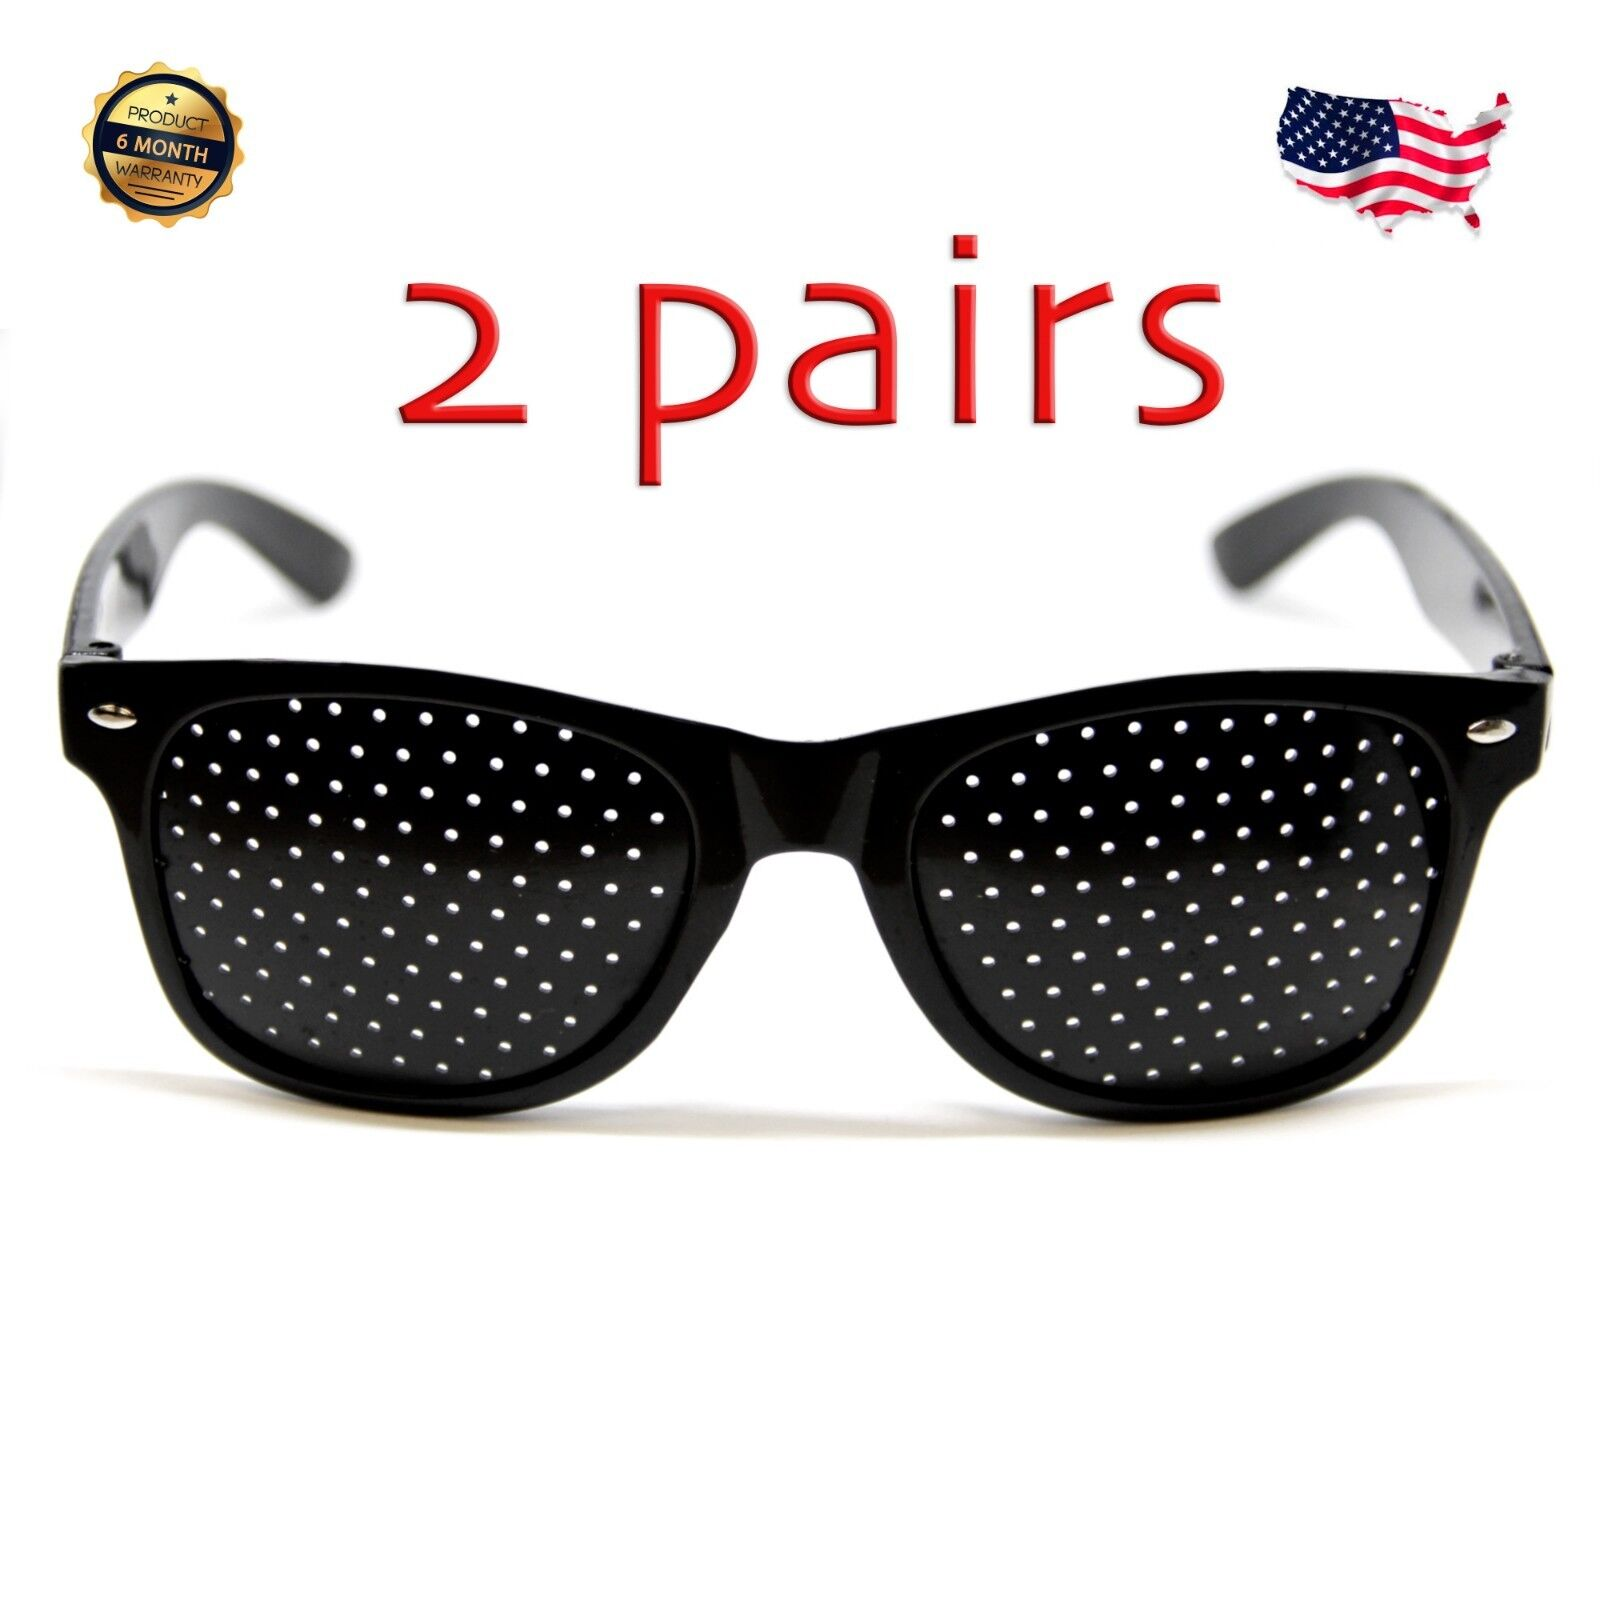 2 pairs of Pinhole glasses vision correction, small holes, eye exercise